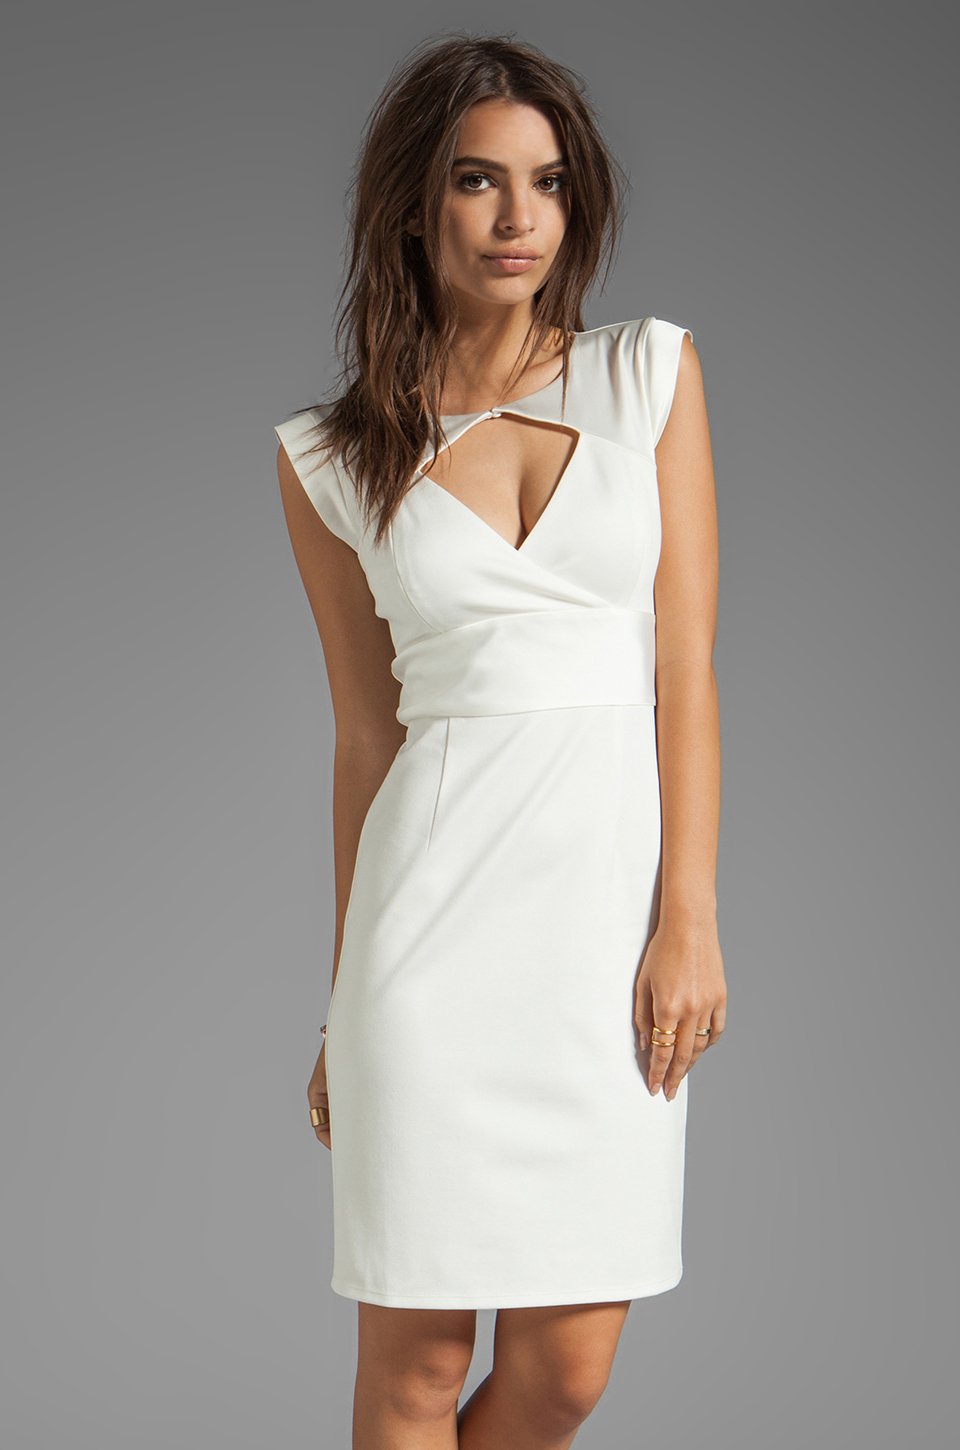 fd8785996dd95 Lyst - Halston Sleeve Contrast Ponte Dress with Diamond Cut Out in ...